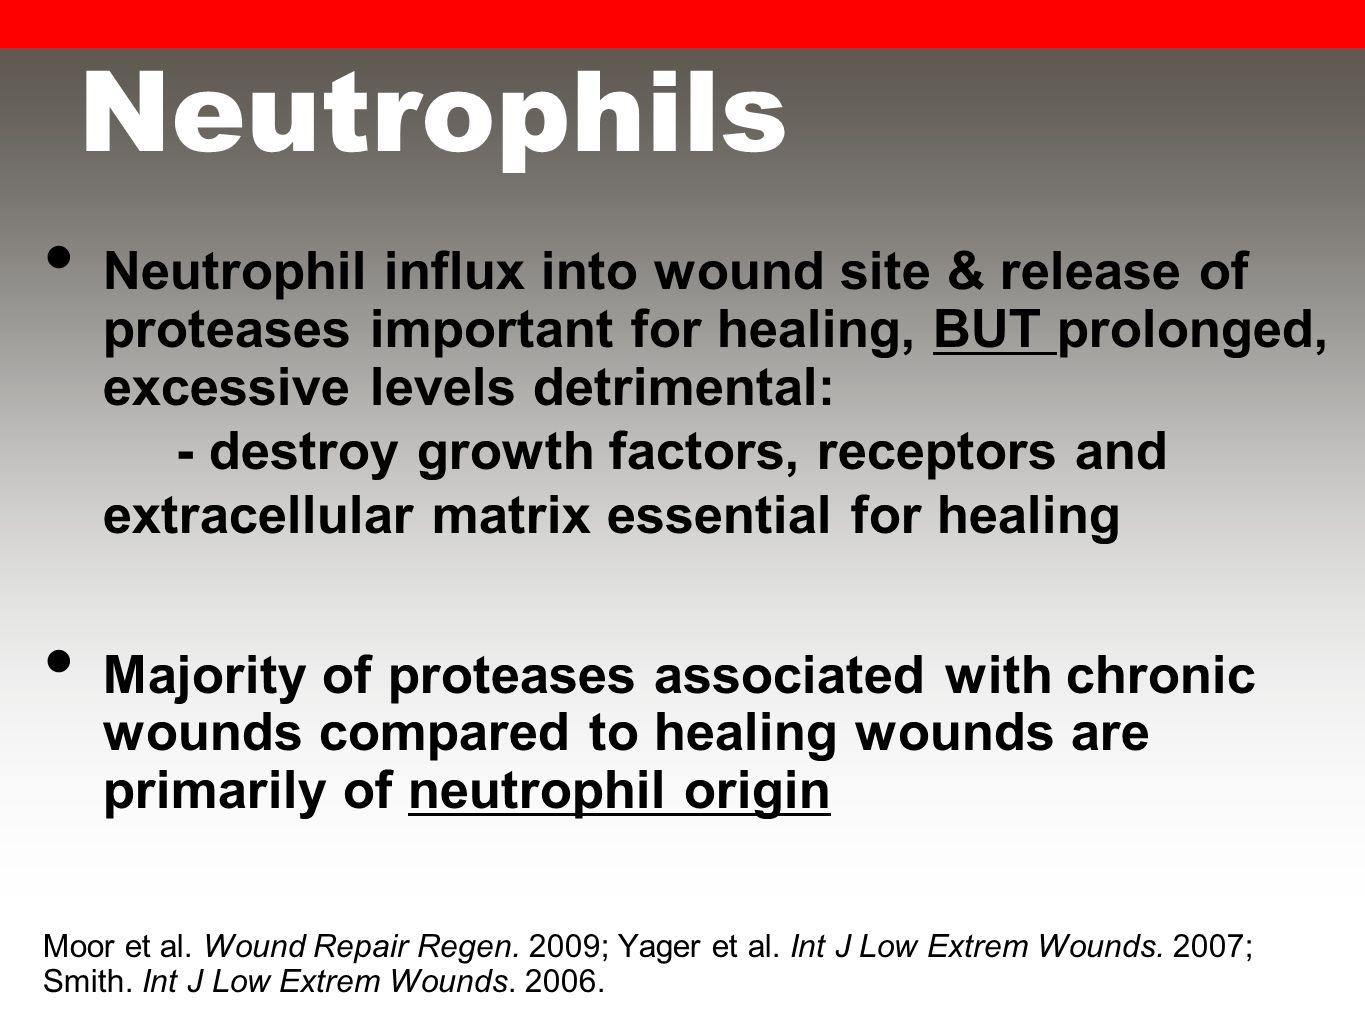 Neutrophils Neutrophil influx into wound site & release of proteases important for healing, BUT prolonged, excessive levels detrimental: - destroy growth factors, receptors and extracellular matrix essential for healing Majority of proteases associated with chronic wounds compared to healing wounds are primarily of neutrophil origin Moor et al.